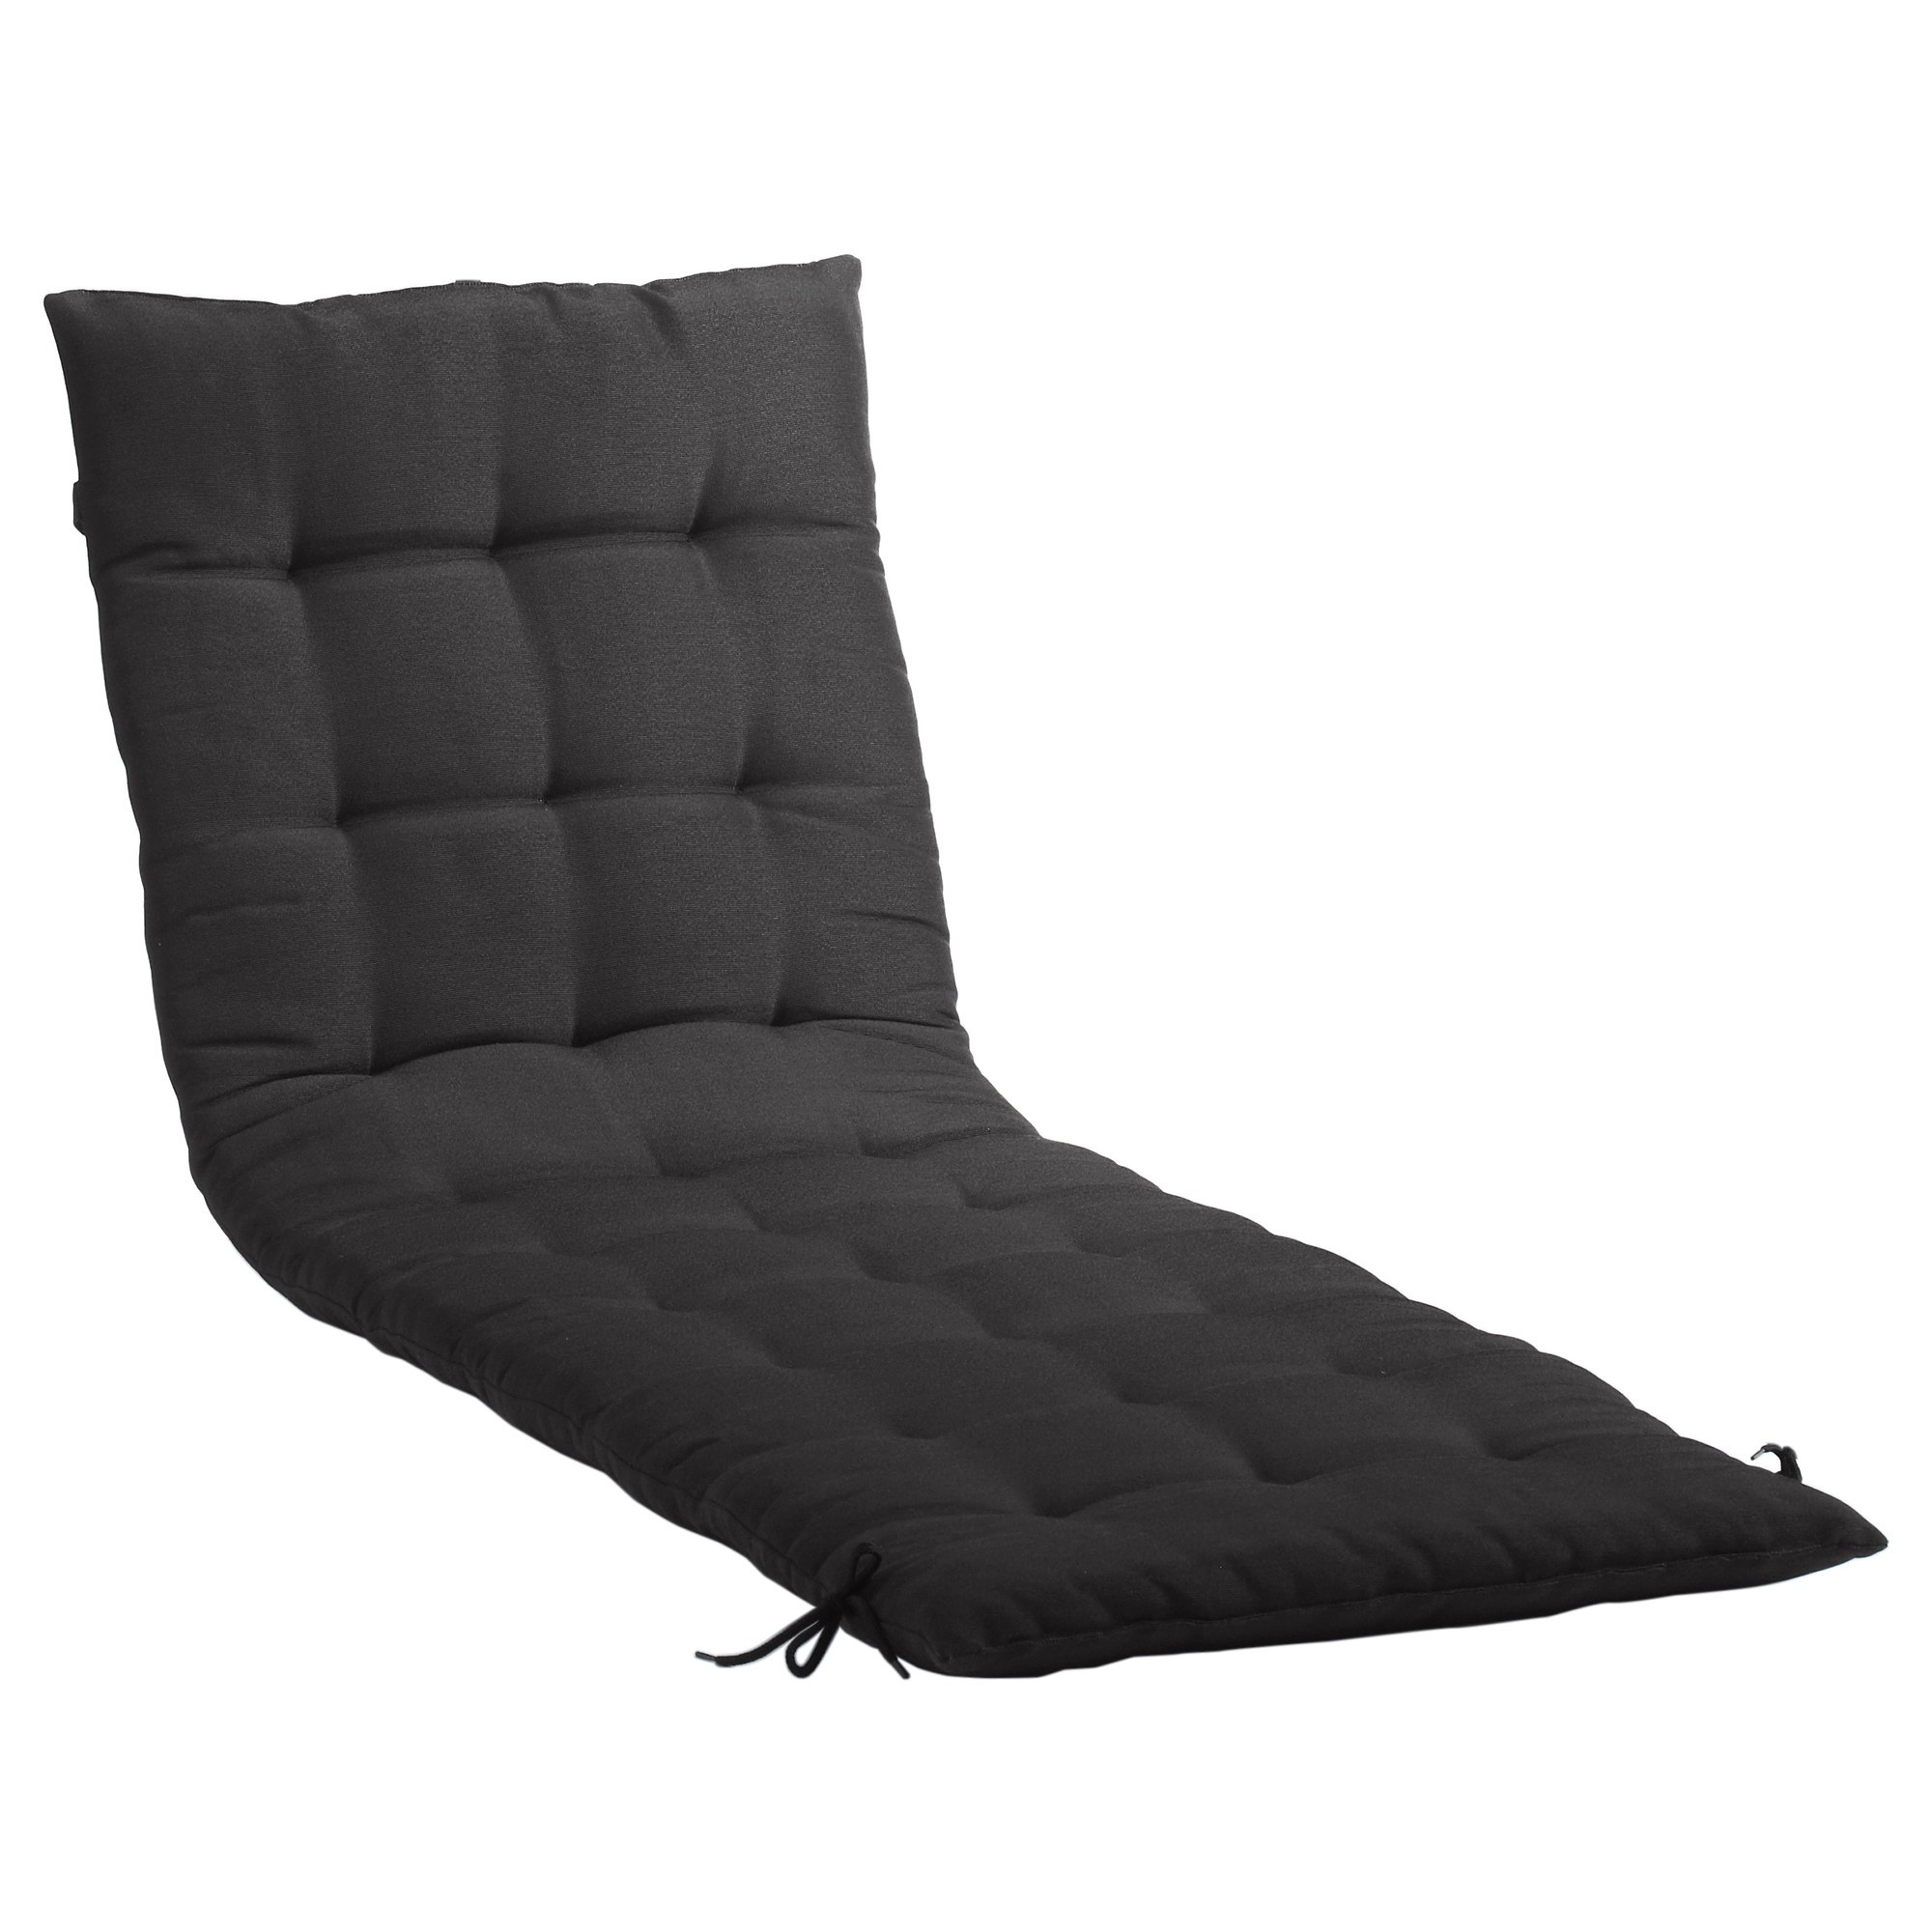 coussin pour chaise exterieur ikea chaise id es de d coration de maison gvnzmeebqa. Black Bedroom Furniture Sets. Home Design Ideas